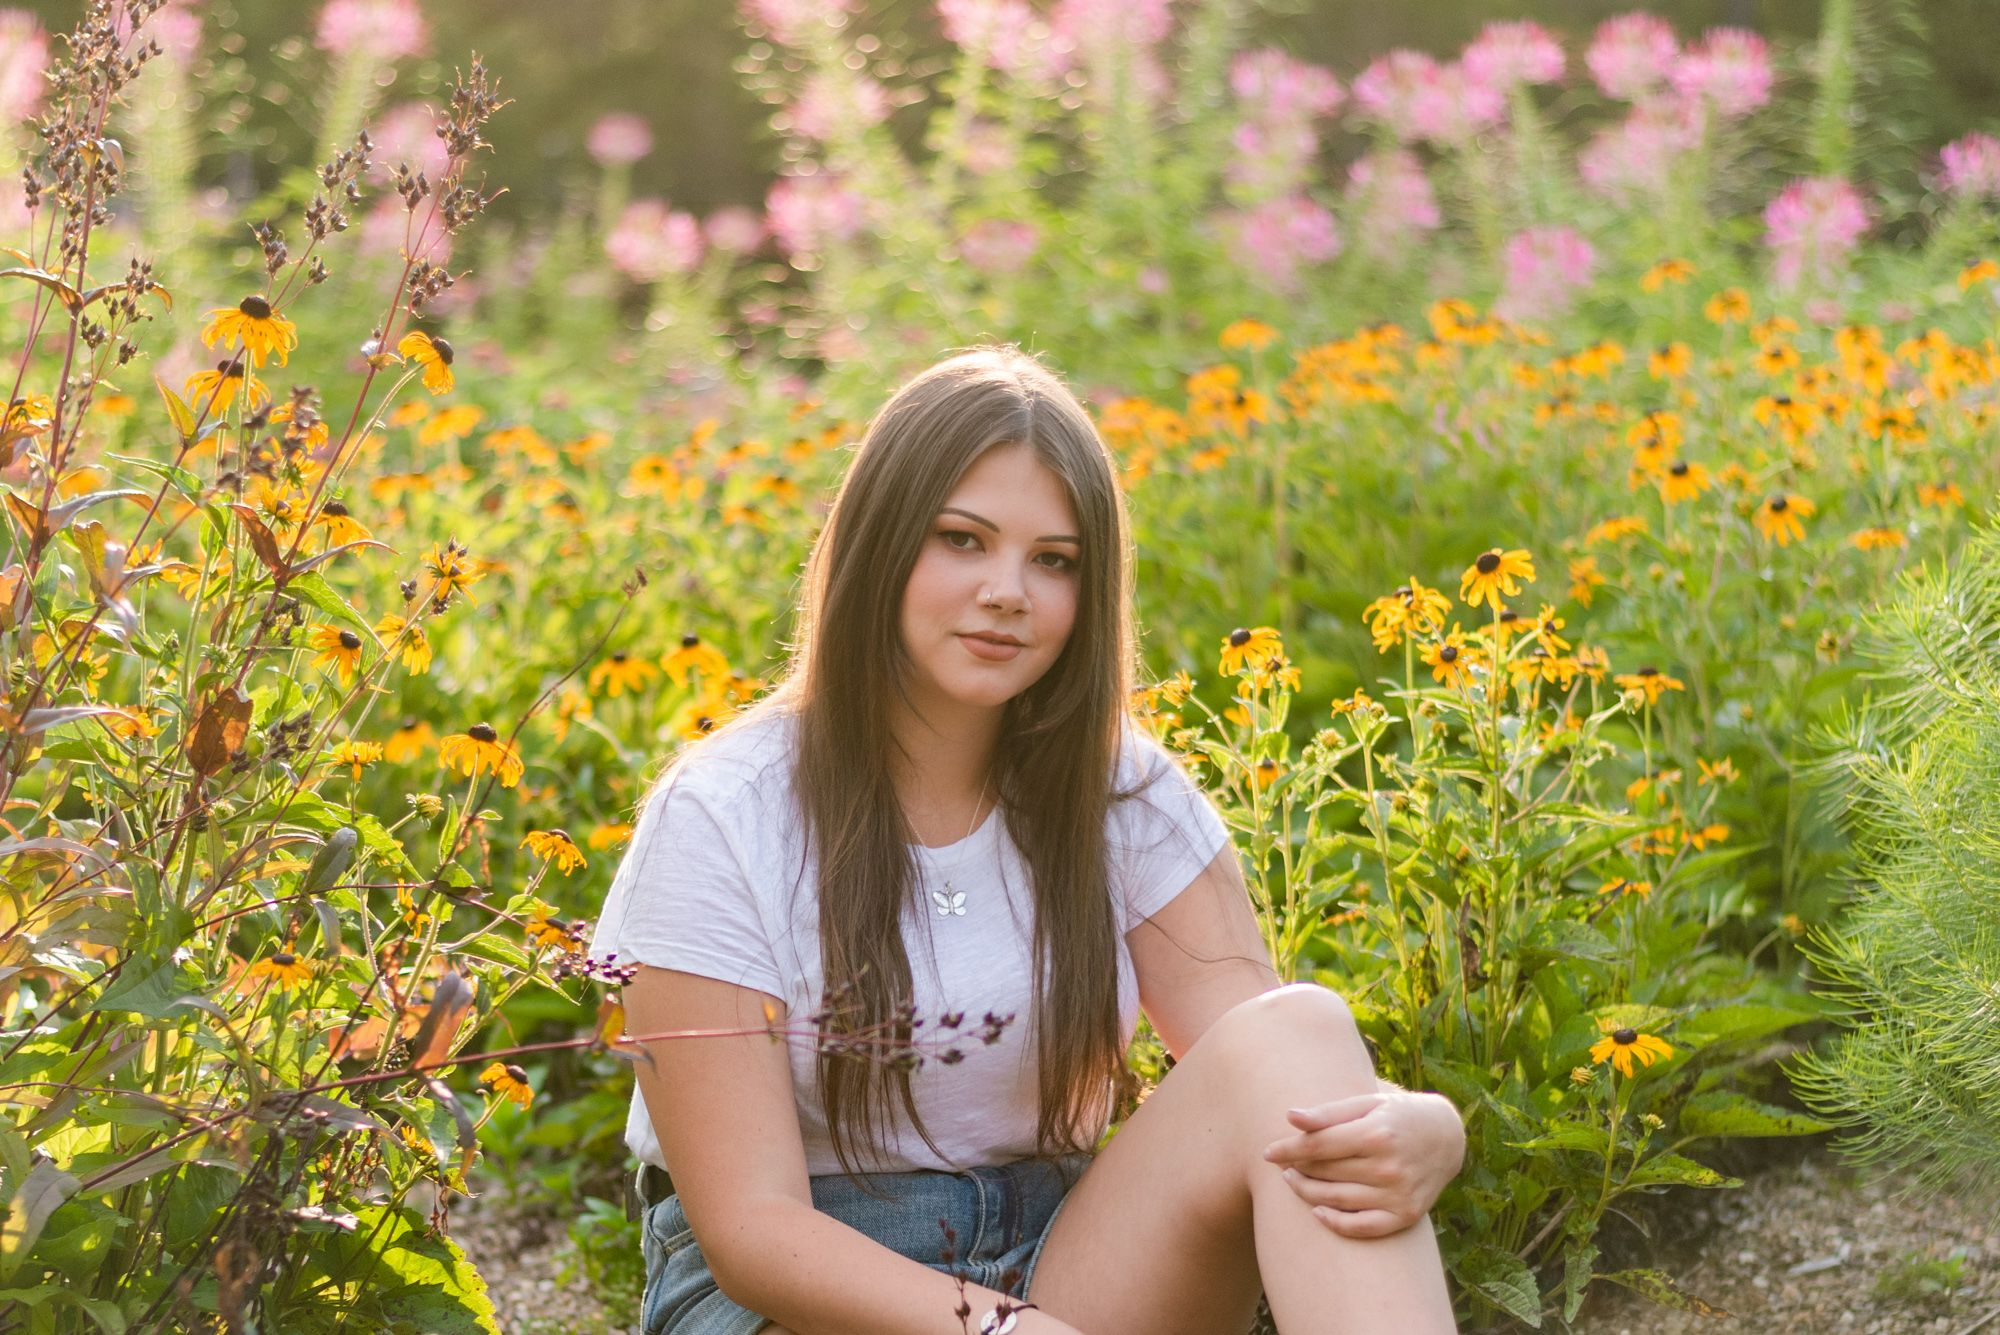 Girl sitting in flowers in golden sunlight at Hartwood Acres in Pittsburgh Pennsylvania